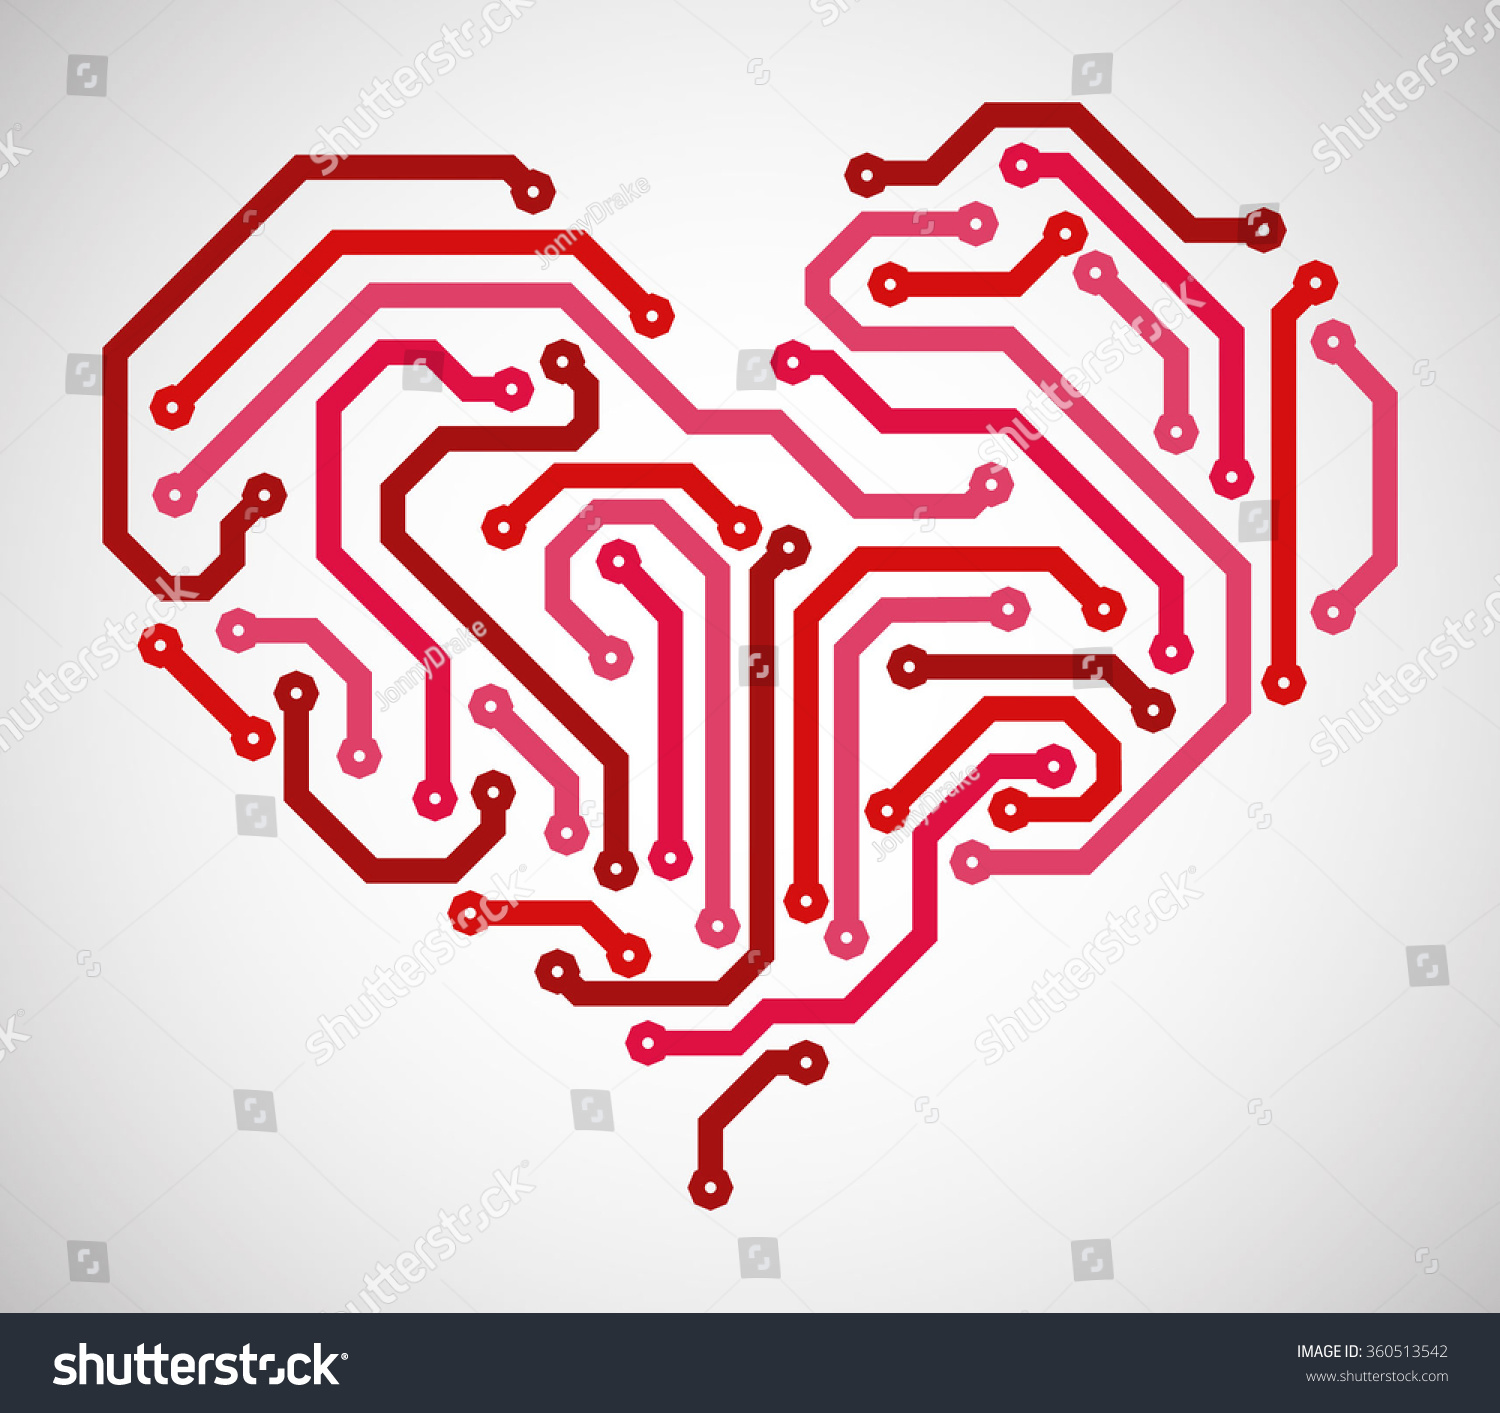 Abstract Heart Made Printed Circuit Board Stock Vector (Royalty Free